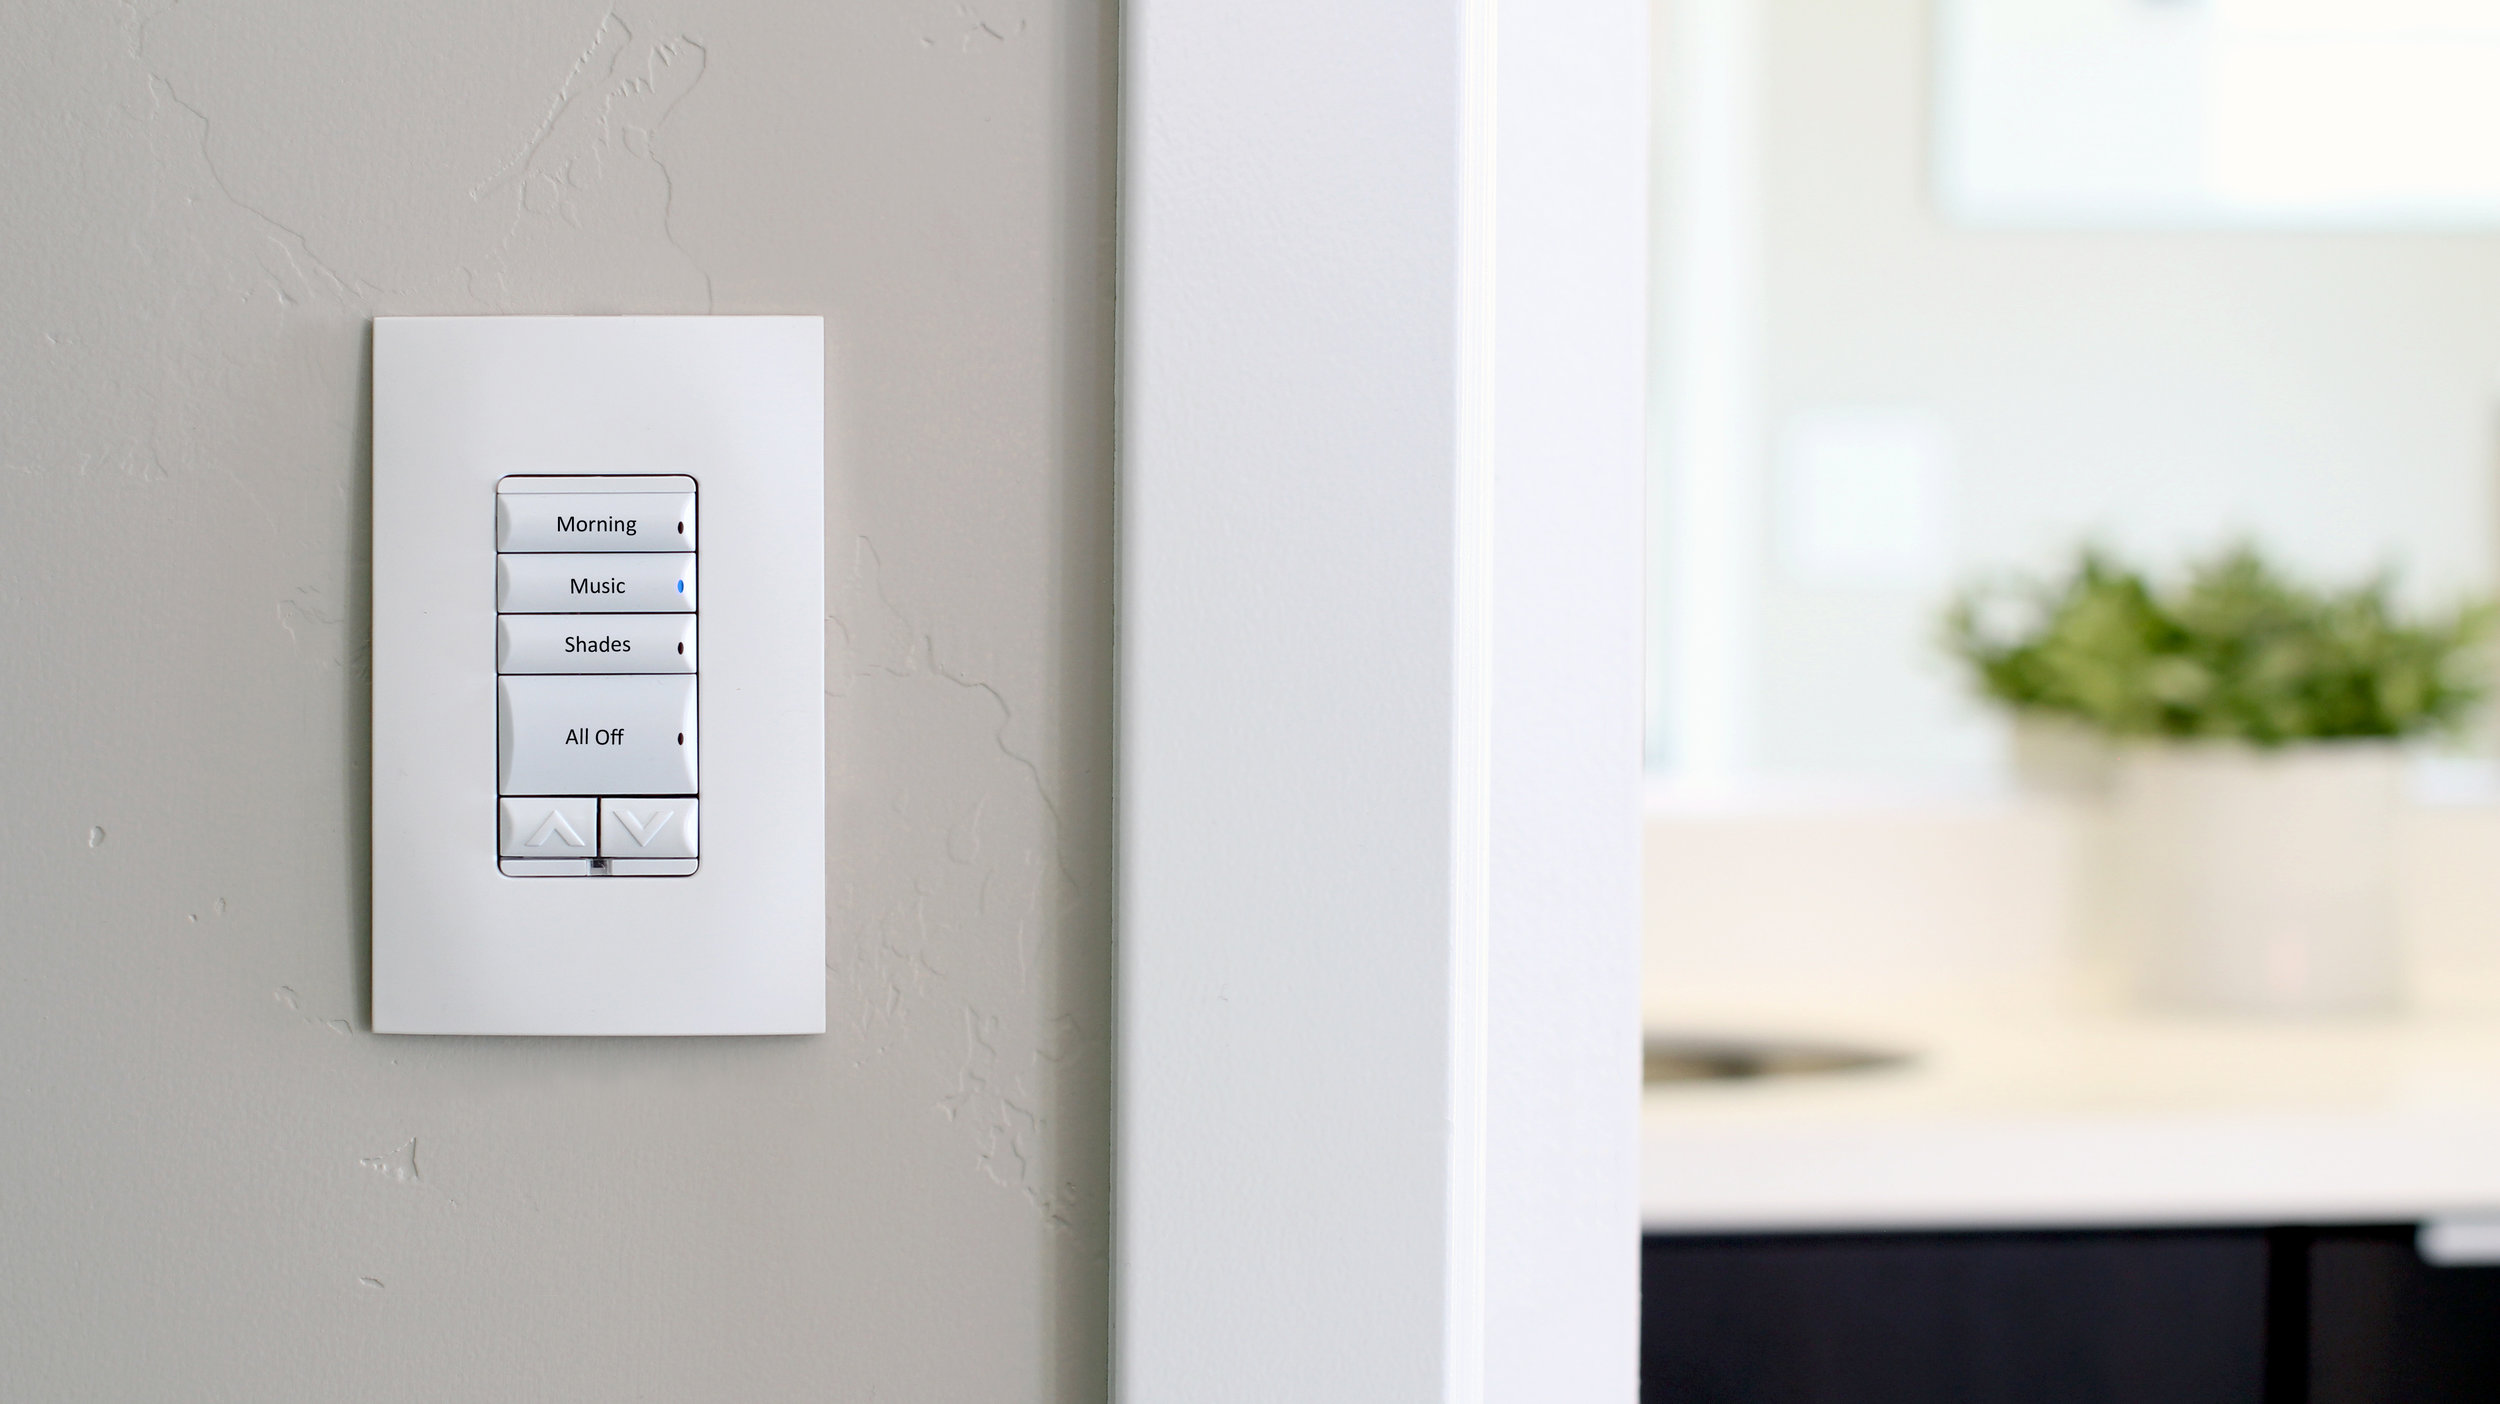 Smart Lighting    Smart Lighting is about control and flexibility of setting the mood of the home. With a single button press you could turn off all the lights in the house or set the mood for your dinner party.